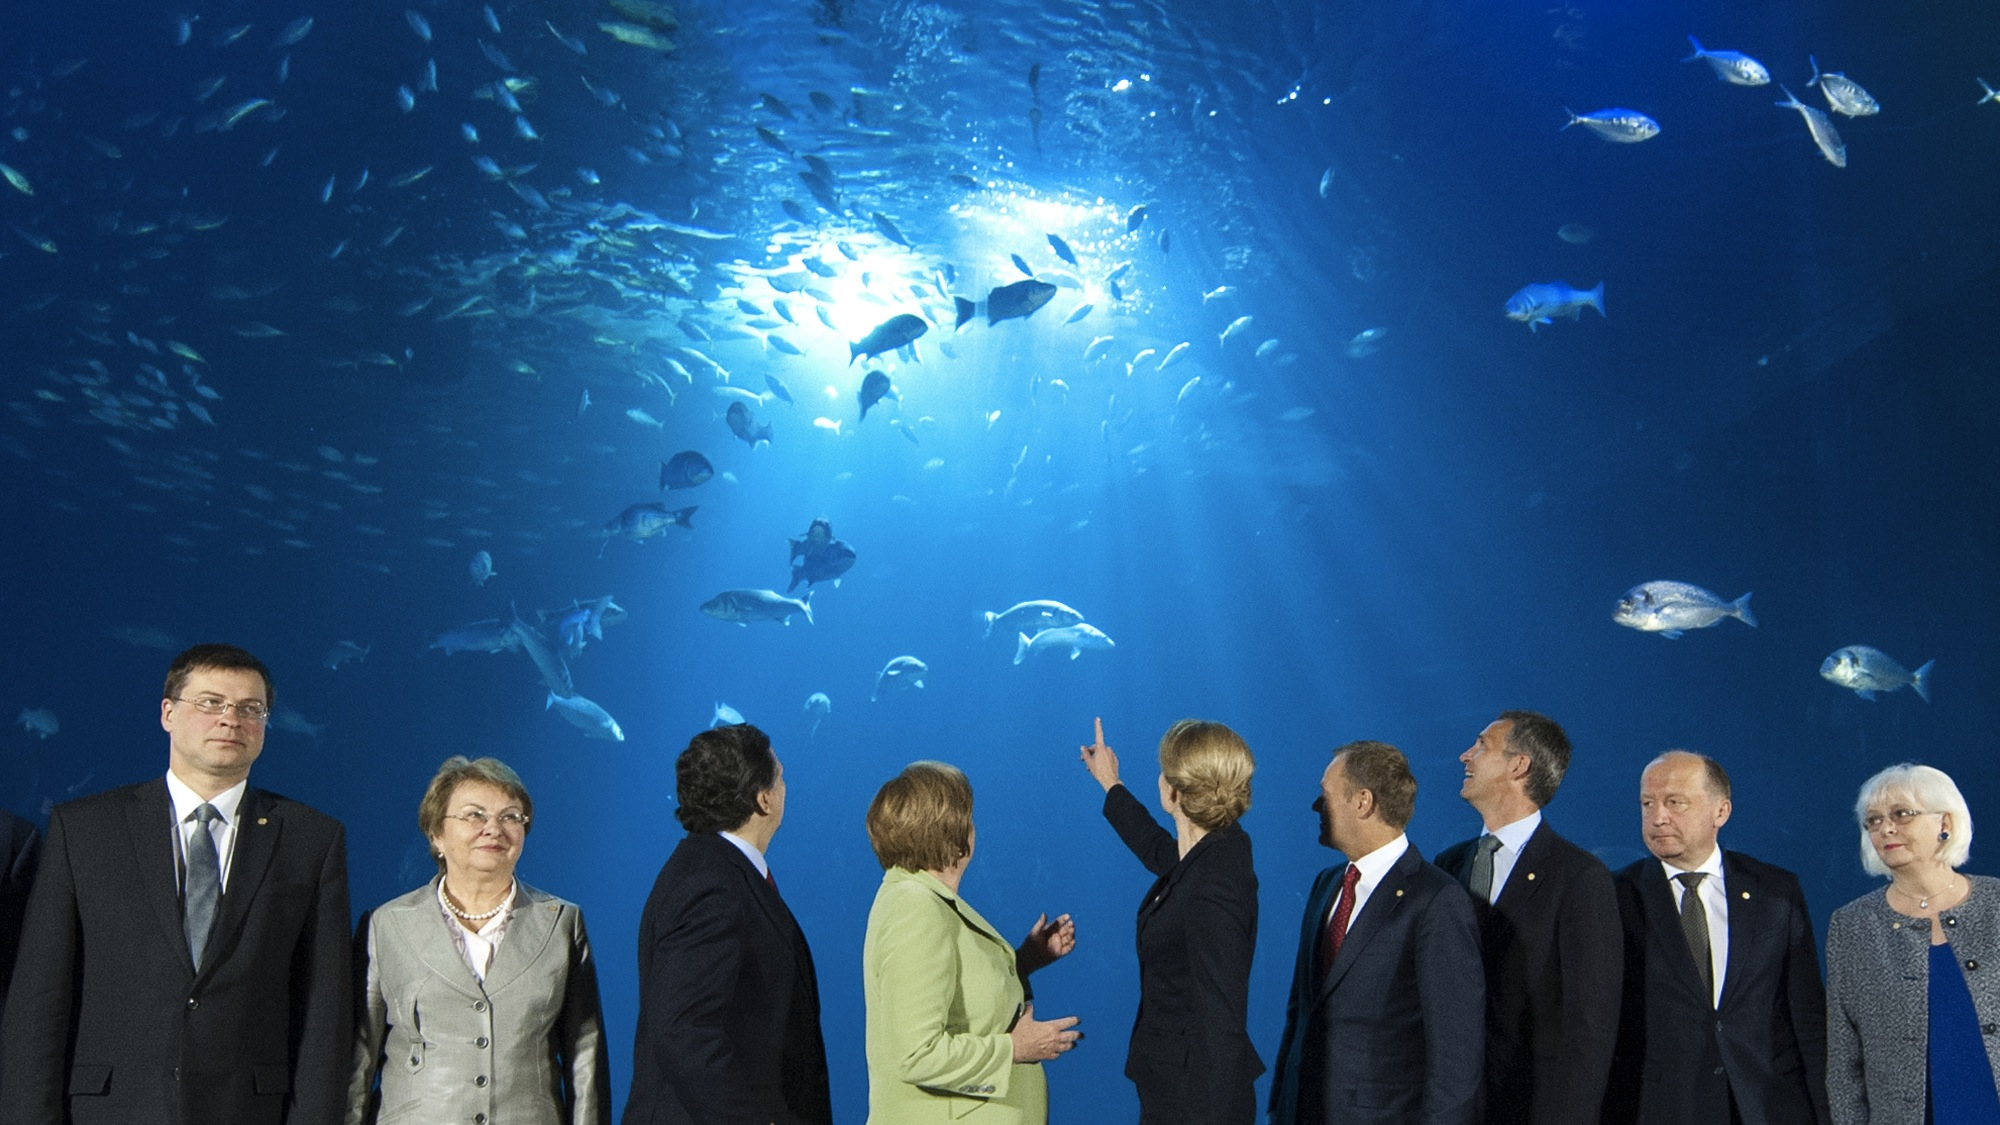 The members of the Council of the Baltic Sea States pose front of a giant aquatic tank at the Ozeaneum sea museum for the family photo at their summit in Stralsund, Germany, Thursday, May 31, 2012. From left: Latvia's Prime Minister Valdis Dombrovskis, Chairman of the Baltic Sea Parliamentary Conference Valentina Pivnenko, President of the European Commission  Jose Manuel Barroso, German Chancellor Angela Merkel, Denmark's Prime Minister Helle Thorning-Schmidt, Poland's Prime Minister Donald Tusk, Norway's Prime Minister Jens Stoltenberg, Lithuania's Prime Minister Andrius Kubilius and Iceland's  Prime Minister Johanna Sigurdardottir. (AP Photo/Jens Meyer)